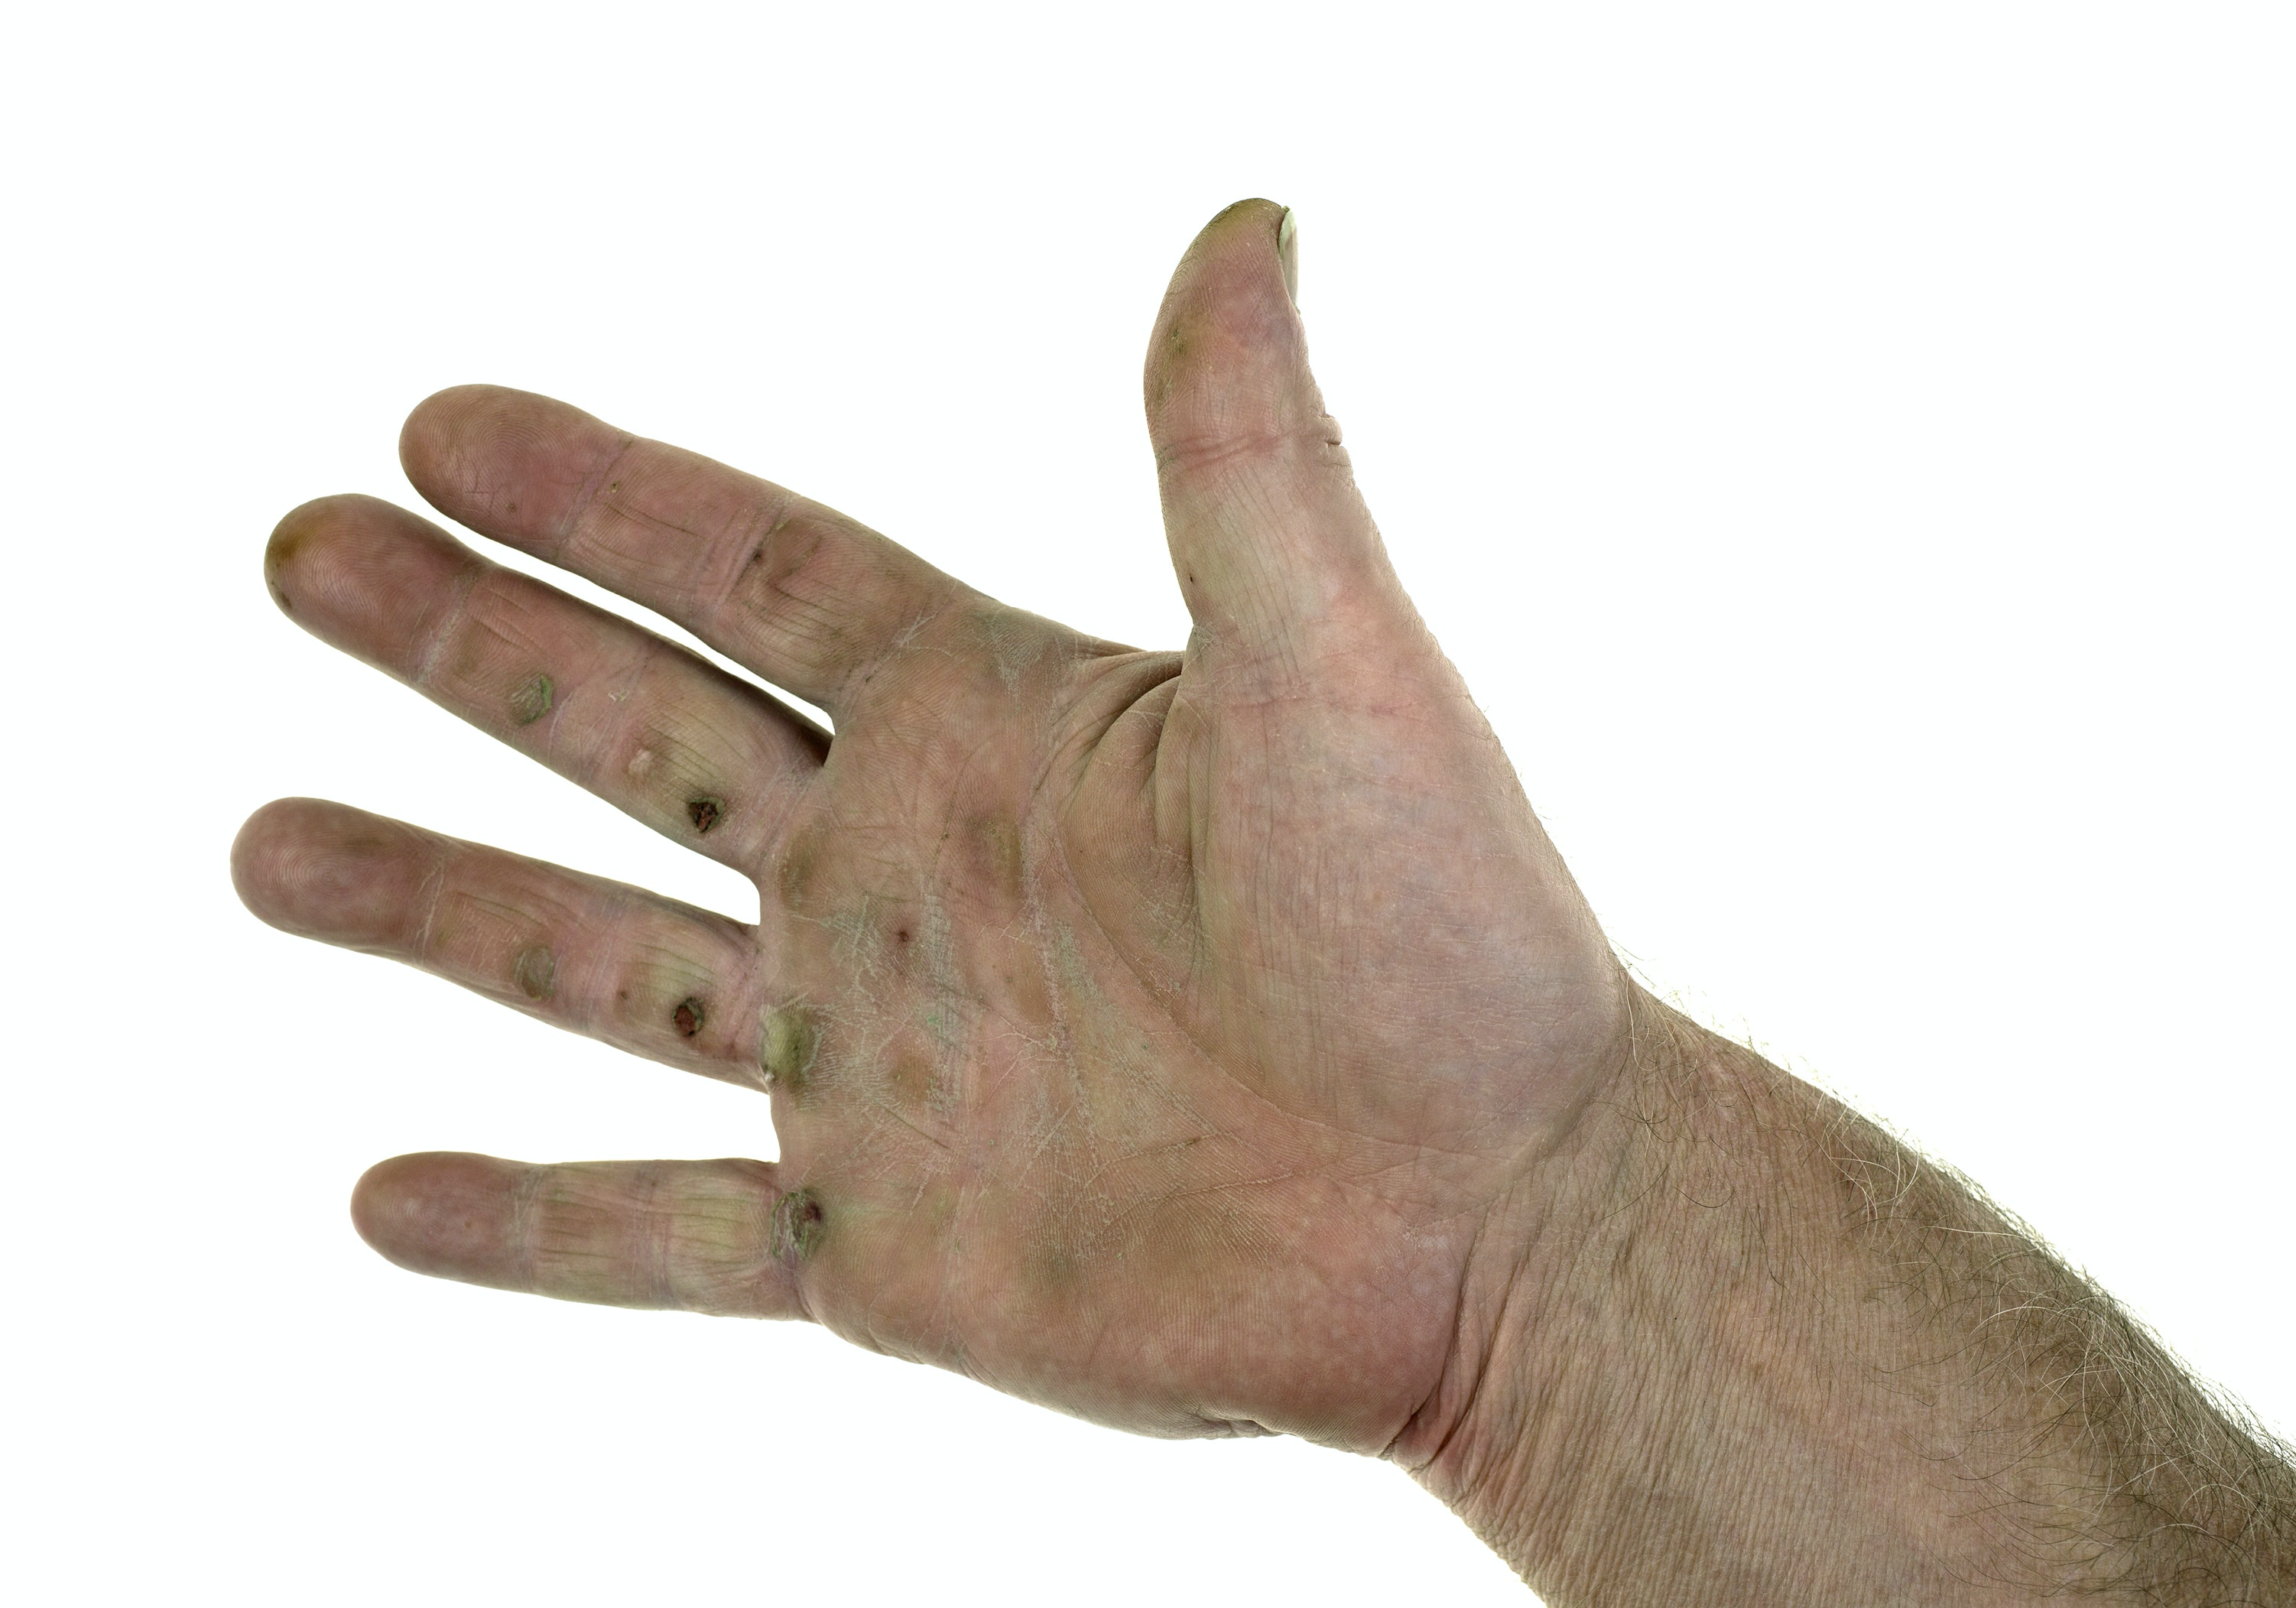 An image depicting a person suffering from thickened skin on the palm of the hand symptoms